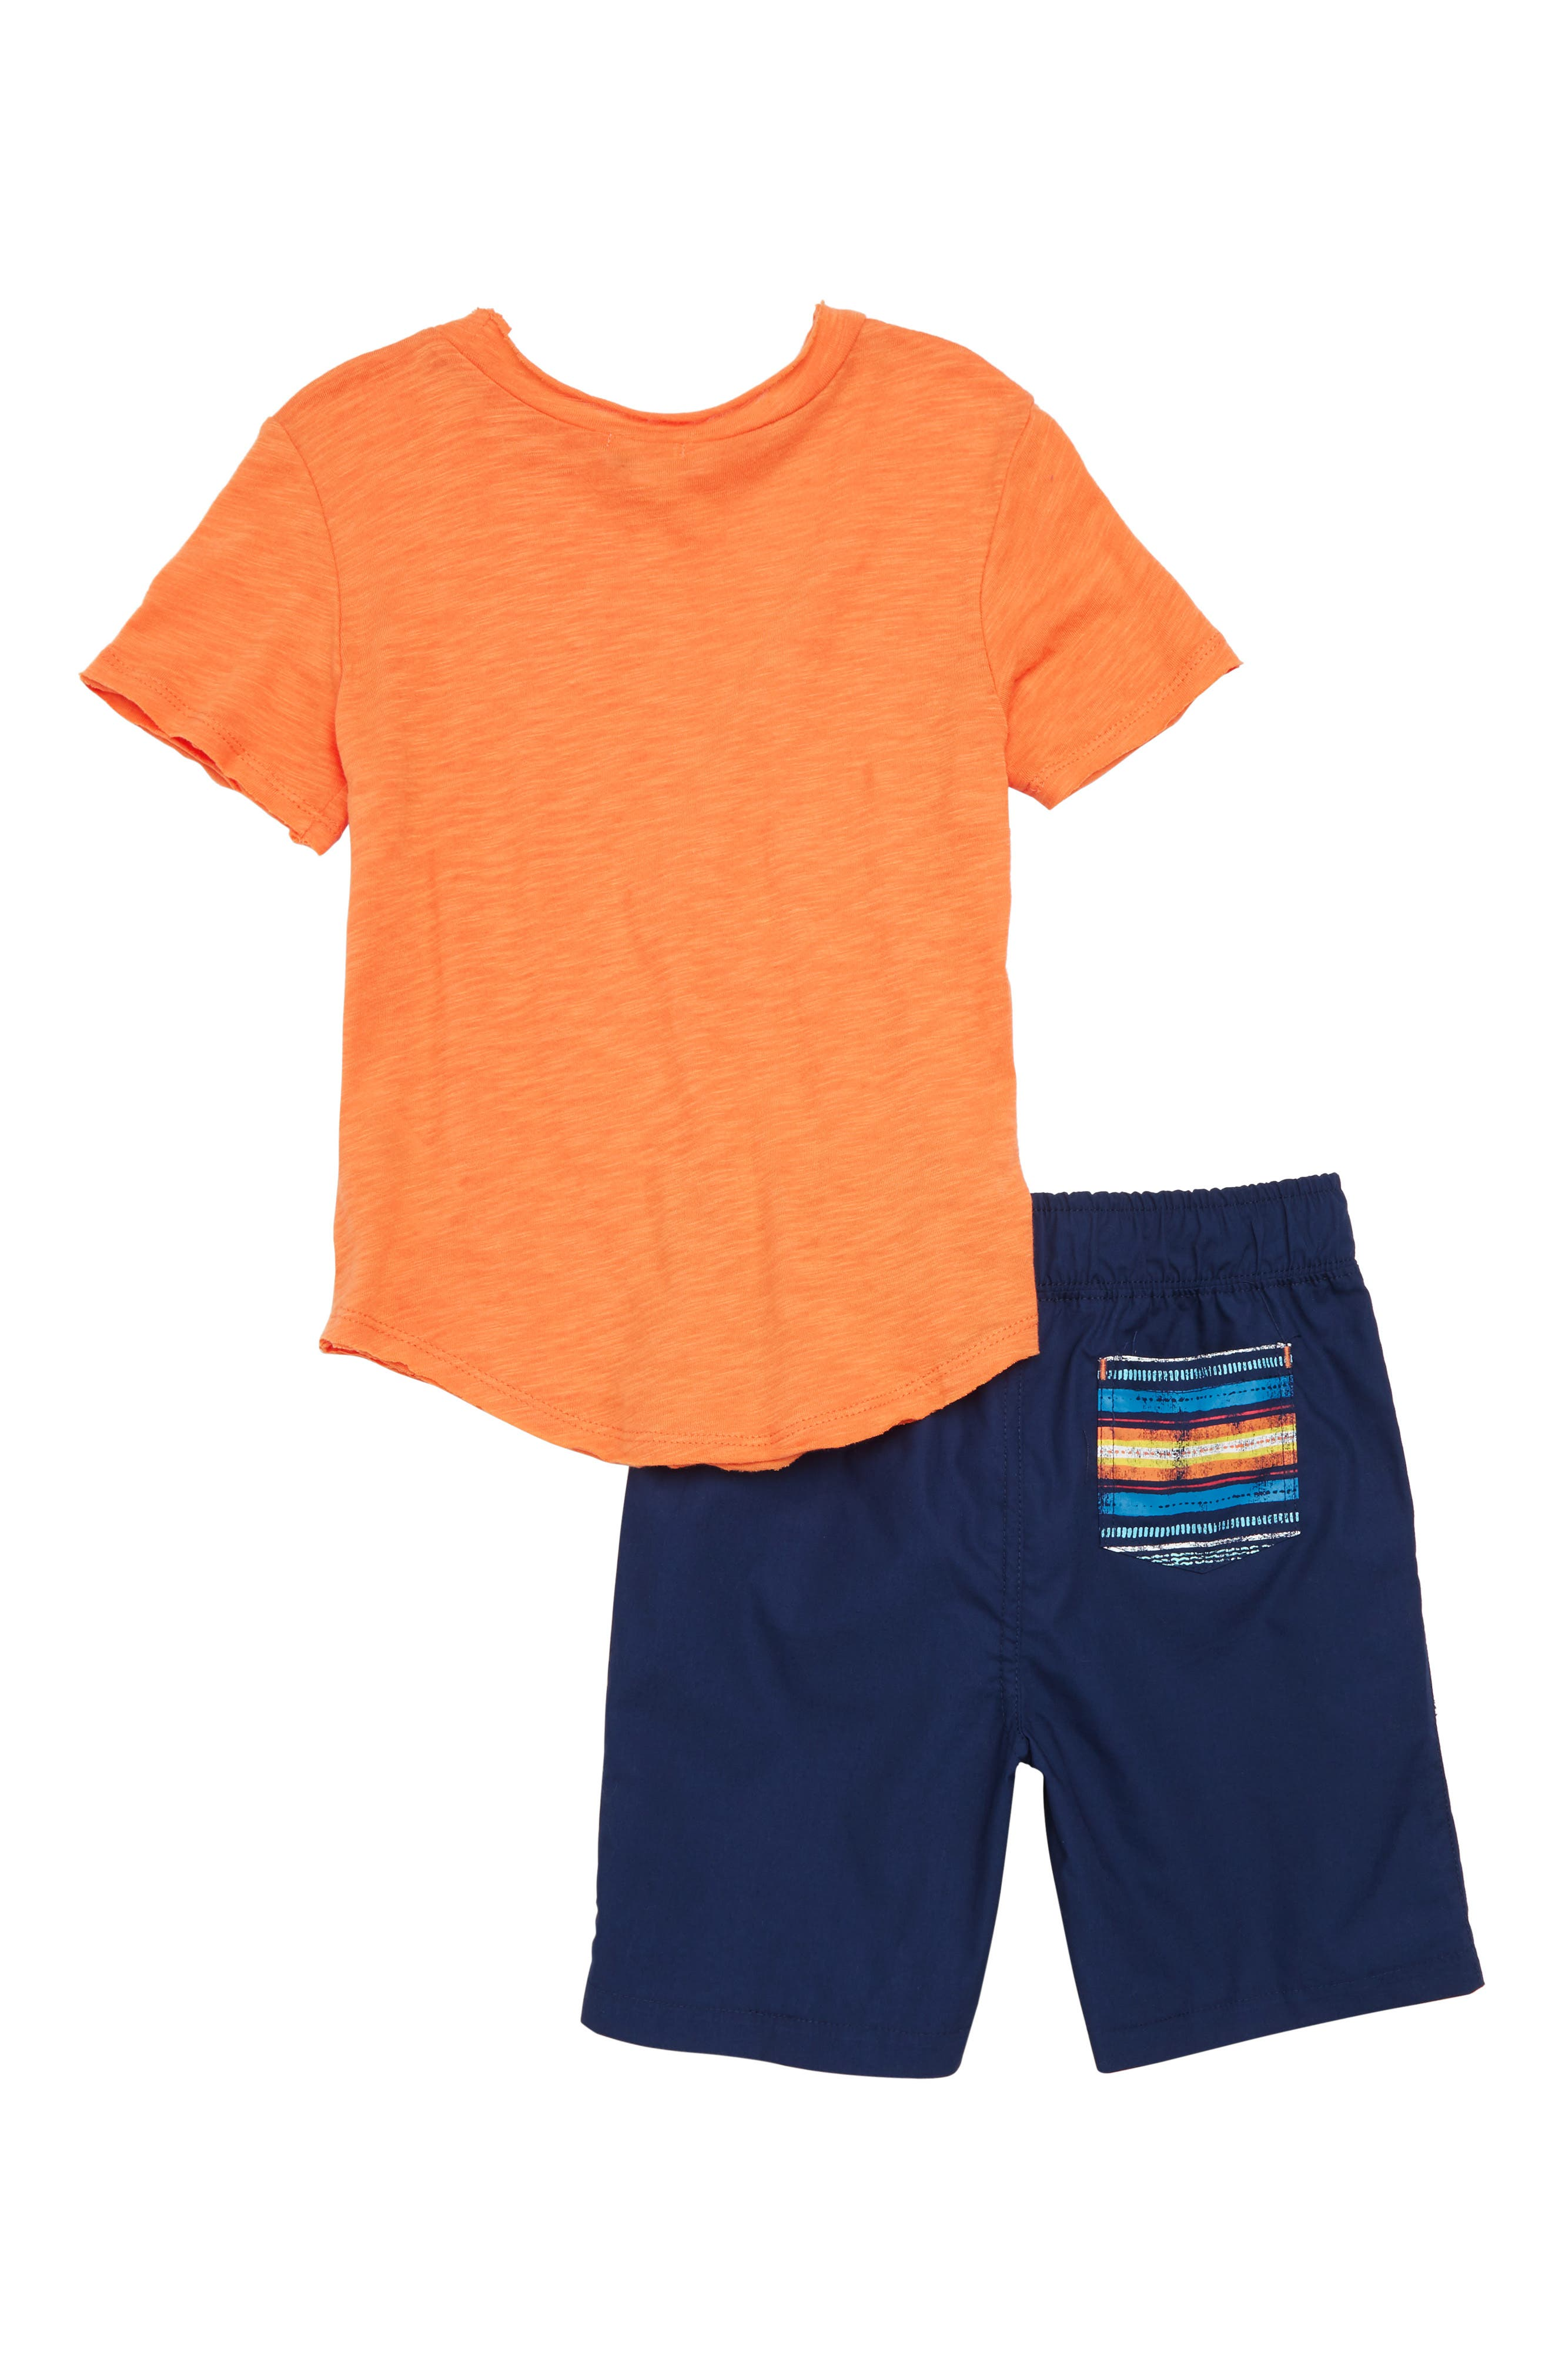 T-Shirt & Stripe Shorts Set,                             Alternate thumbnail 2, color,                             800